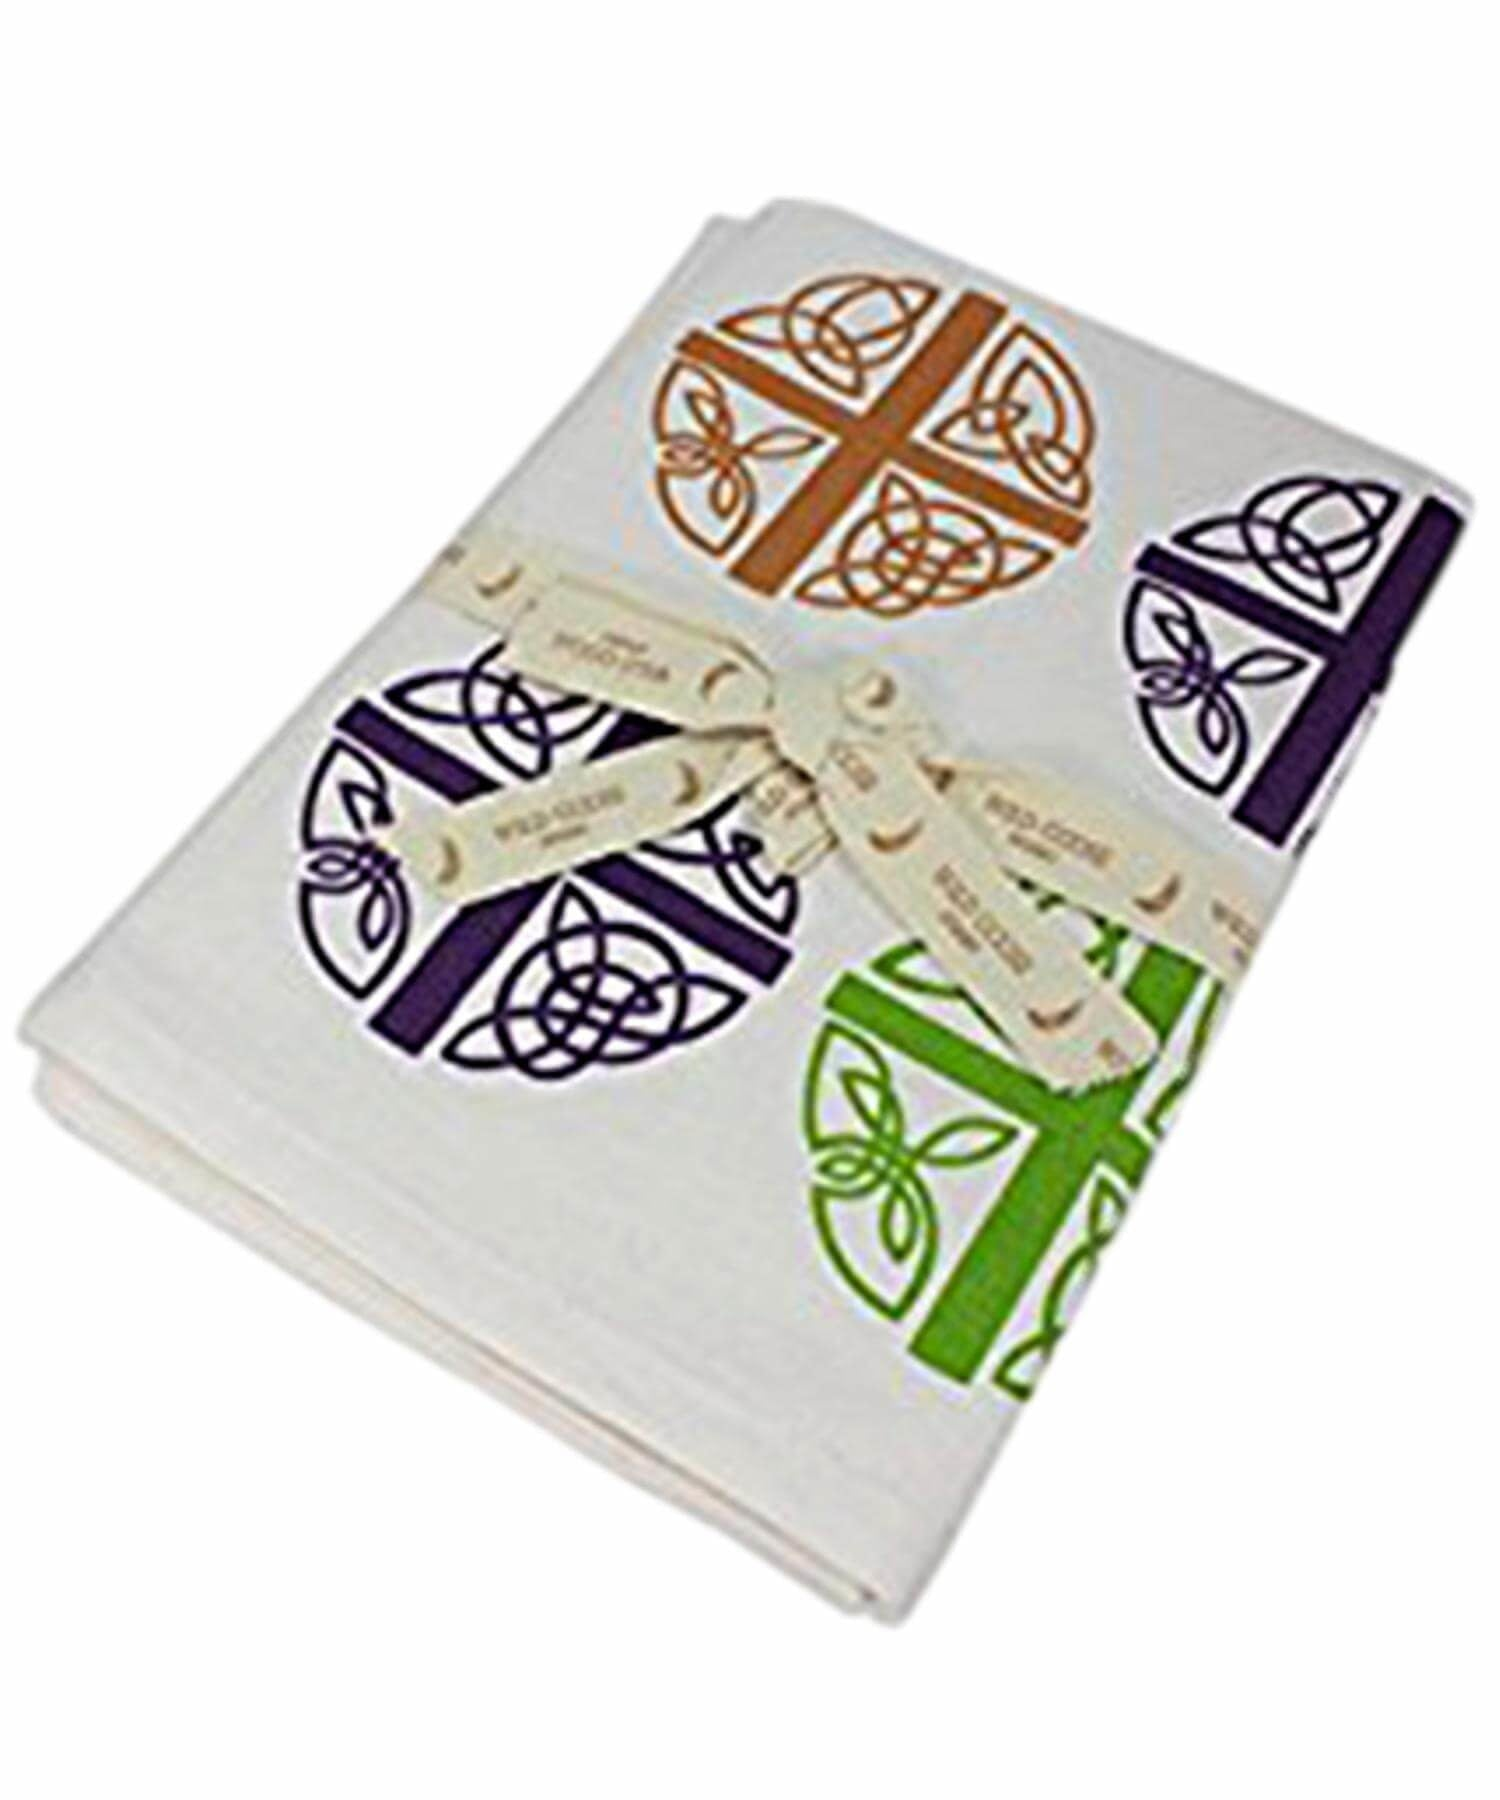 Teatowel - Celtic Love Cross - [Wild Goose] - Kitchen & Dining Textiles - Irish Gifts